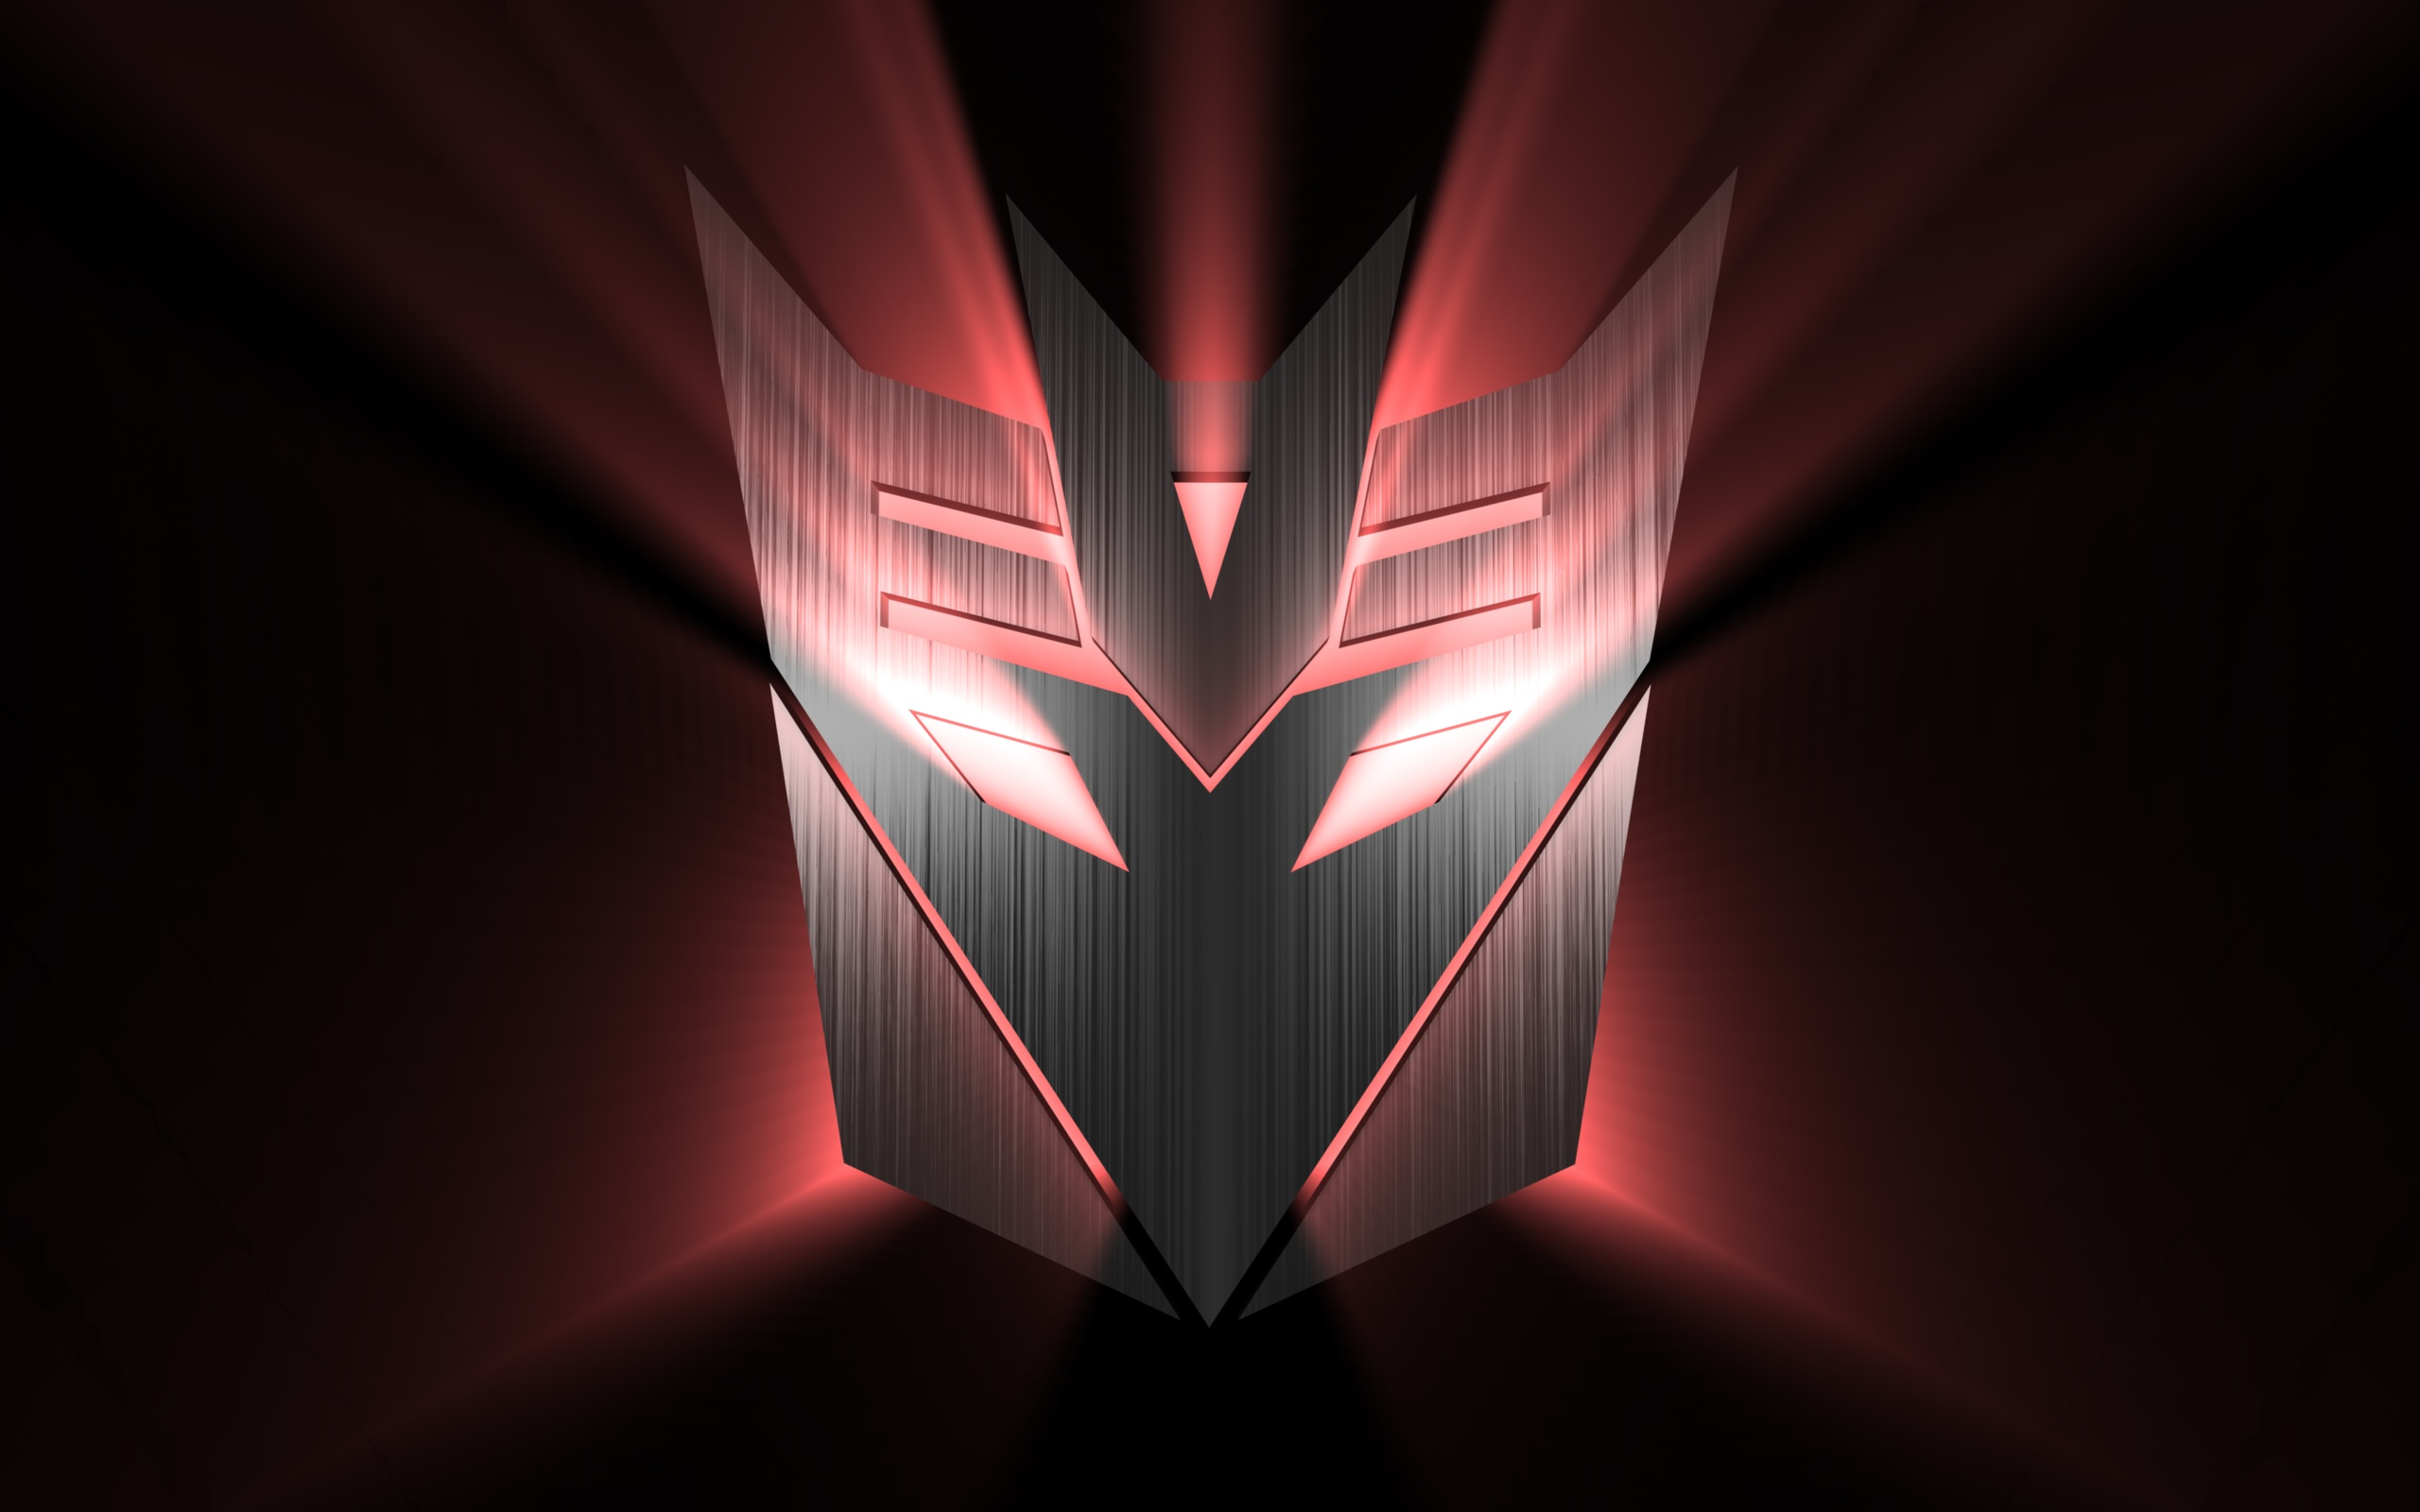 Decepticon logo wallpaper Wallpaper Wide HD 2560x1600